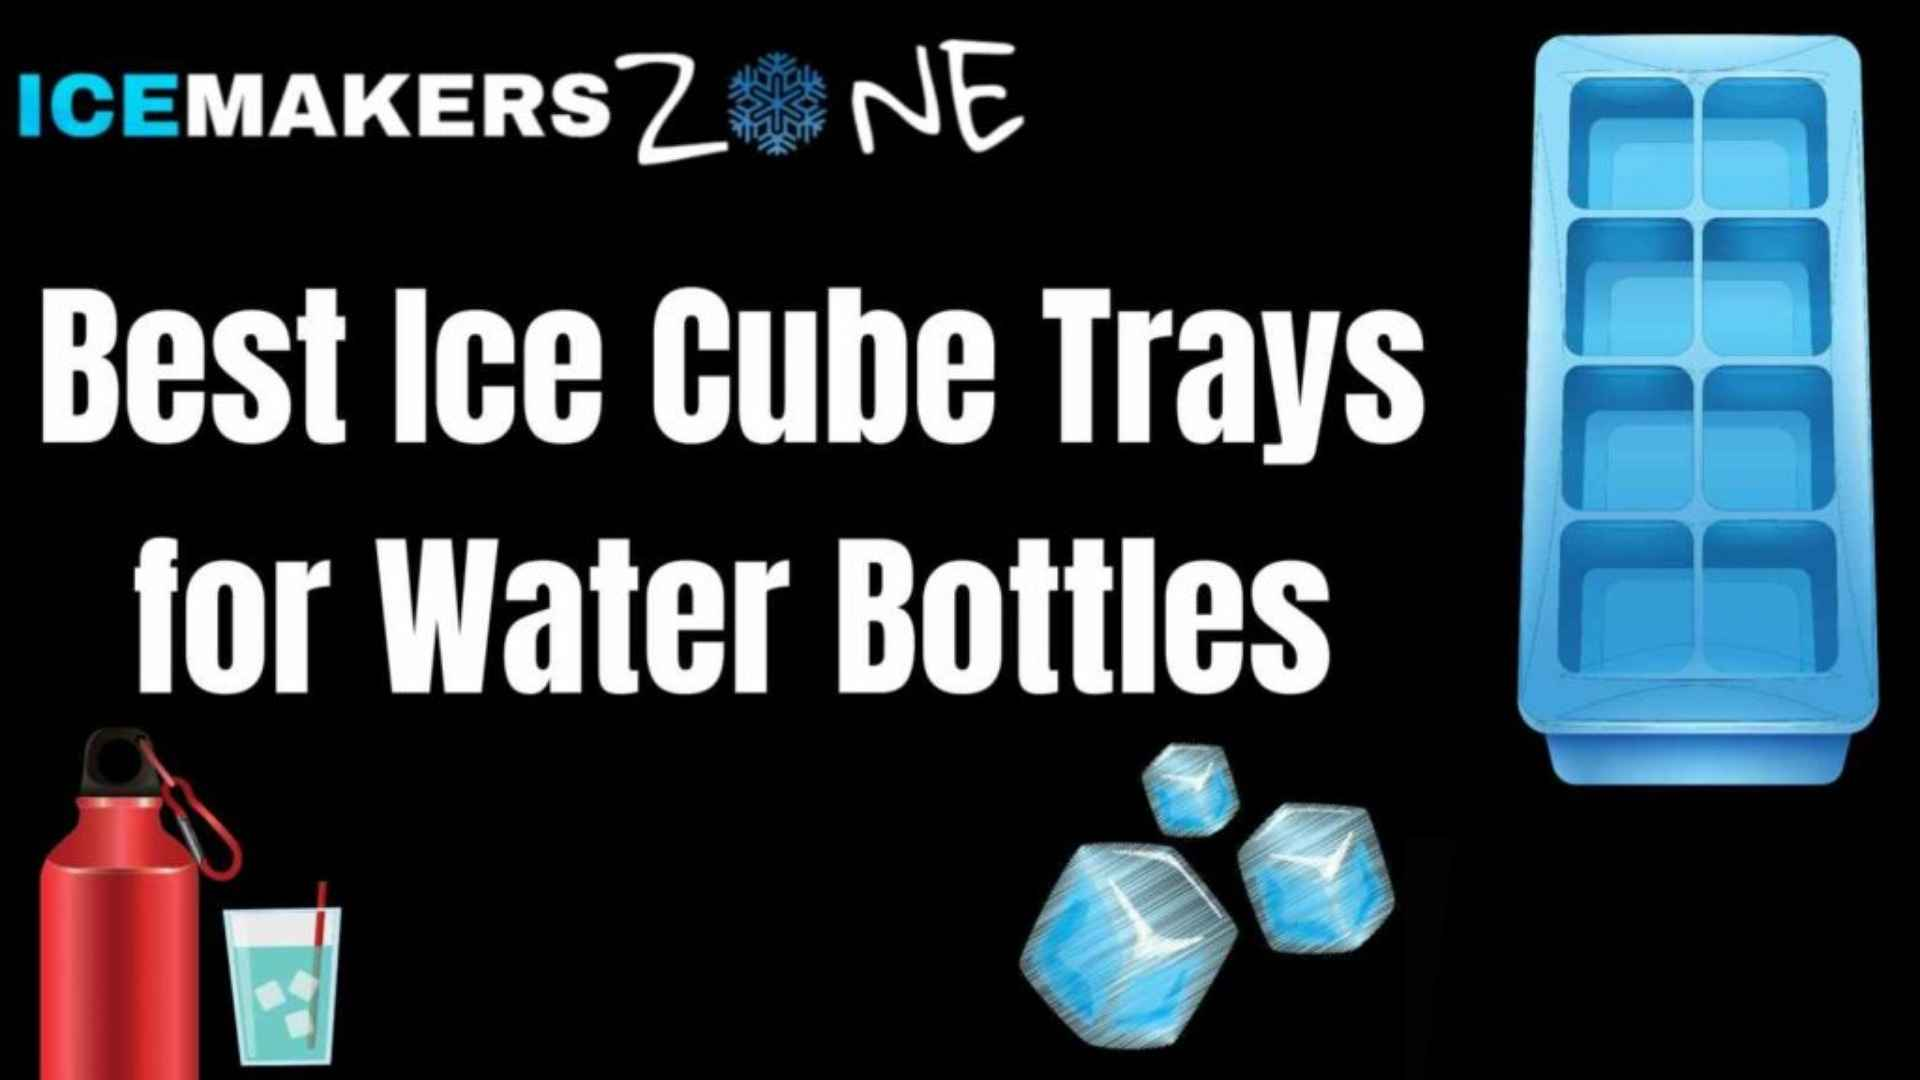 Best Ice Cube Trays for Water Bottles